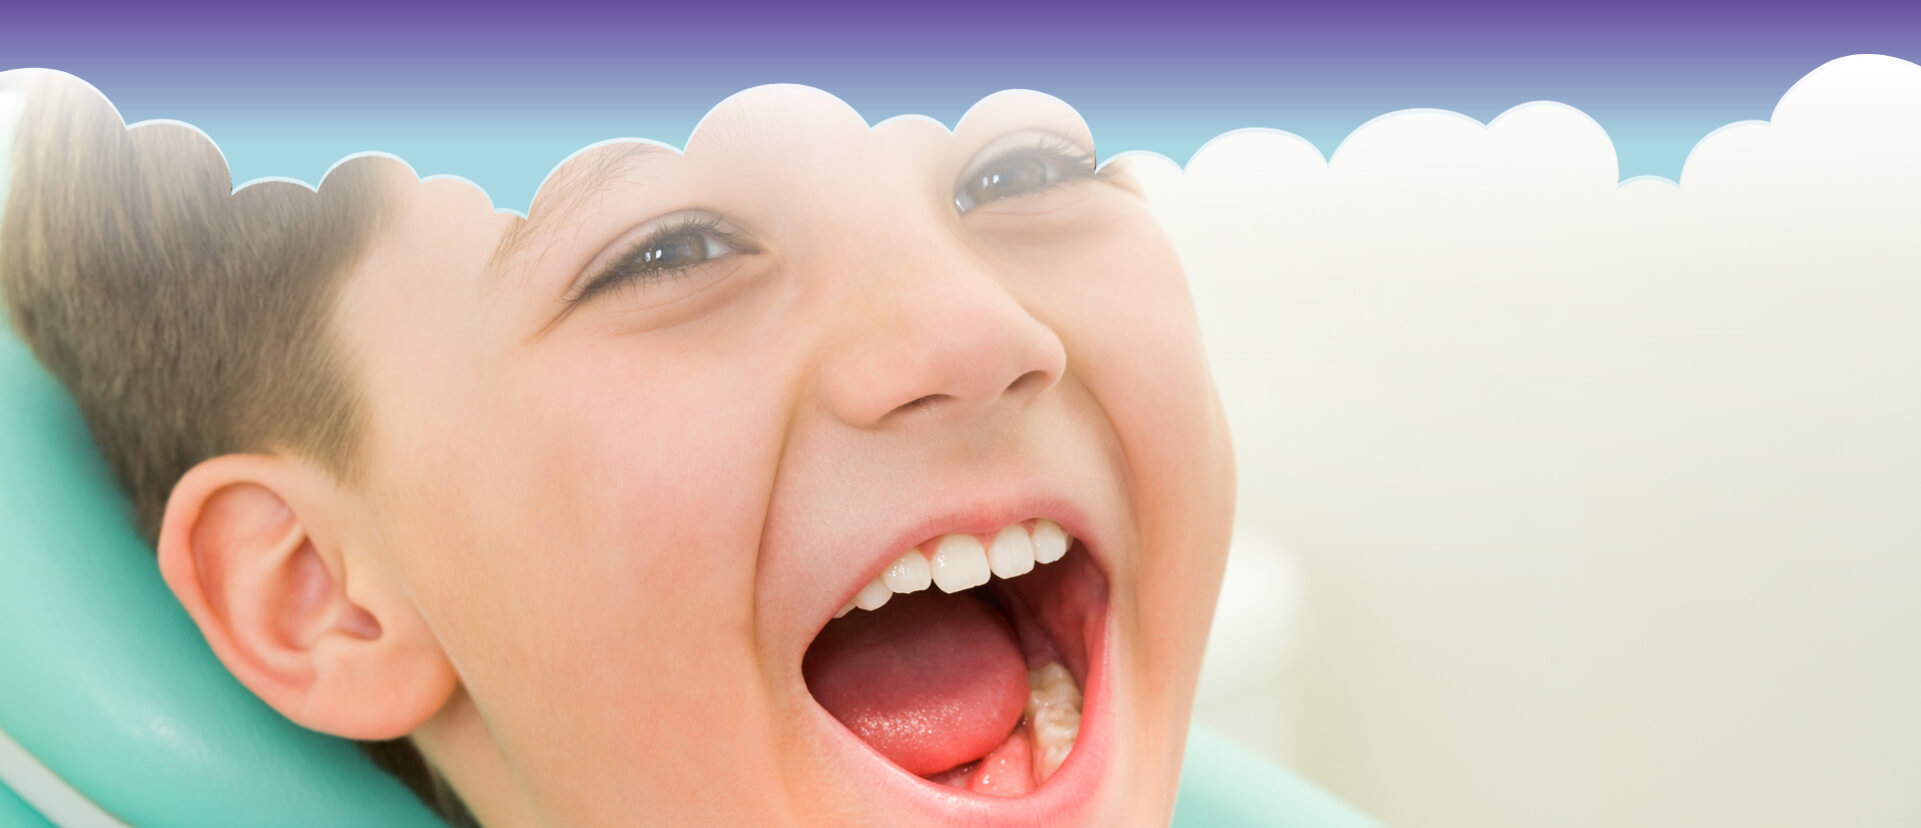 Young child smiling with his mouth wide open